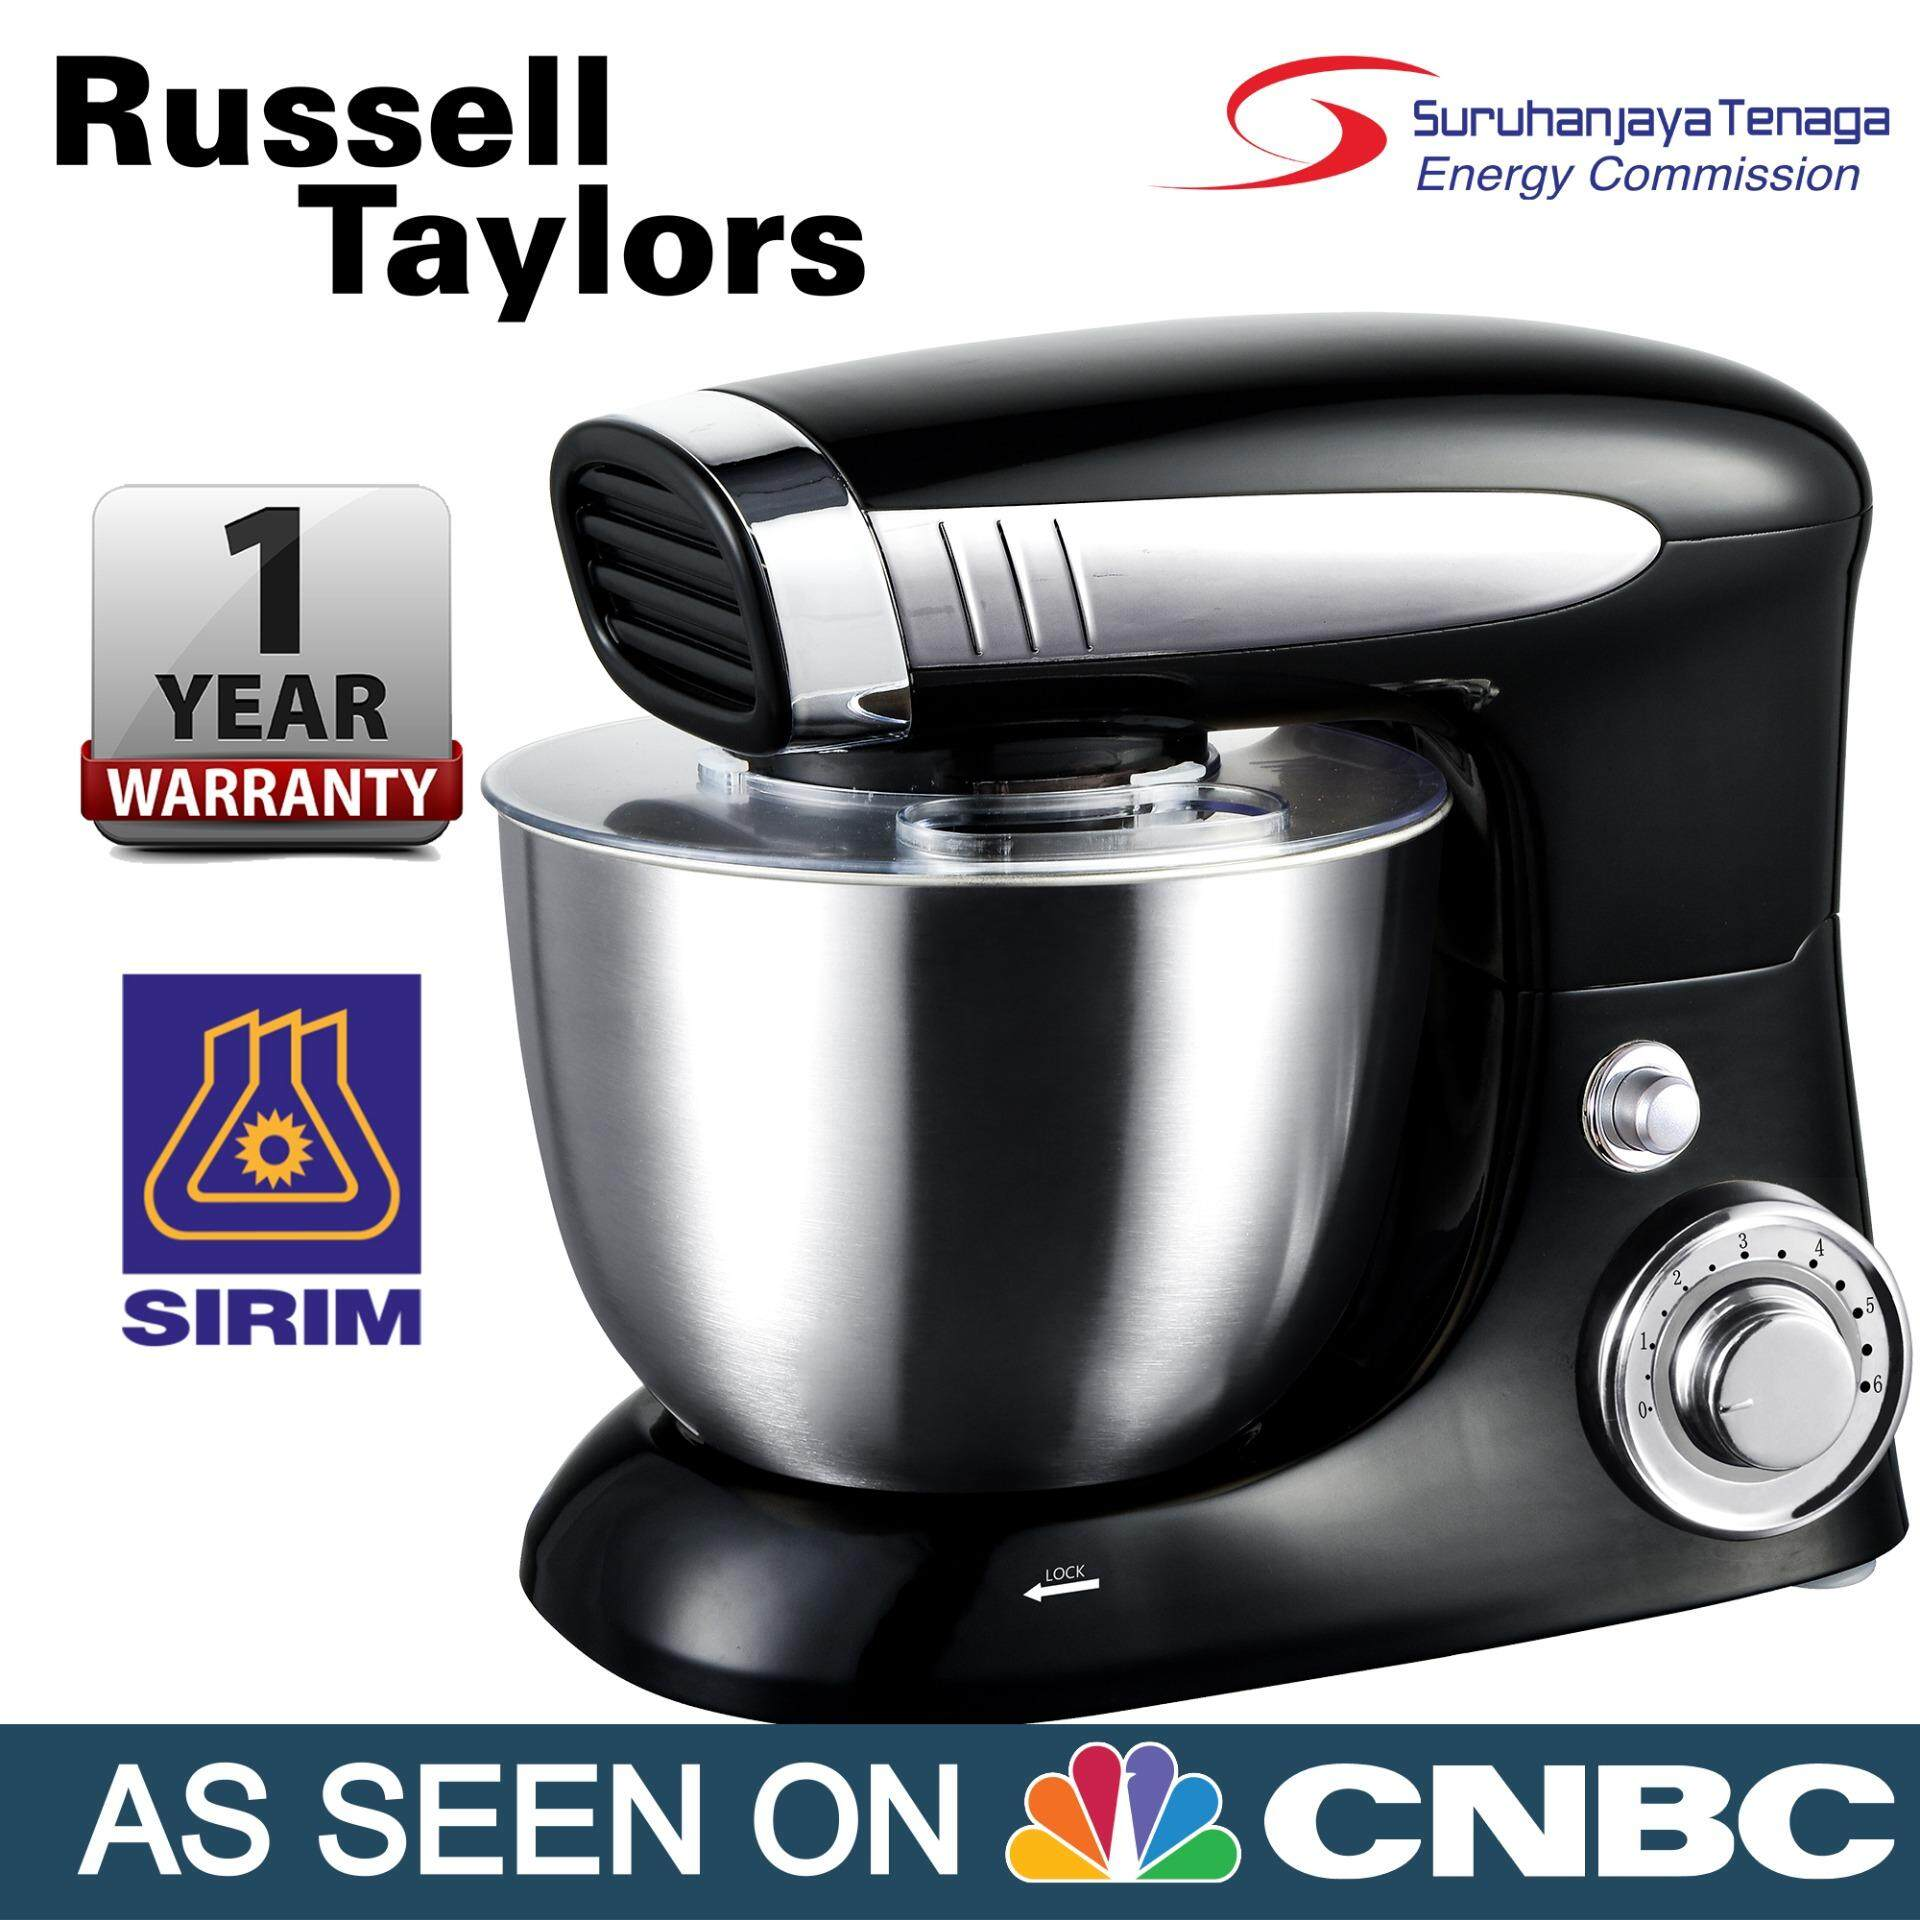 Russell Taylors 500w 4l Stand Mixer Sm-500 Cake Kitchen Blender By Russell Taylors.